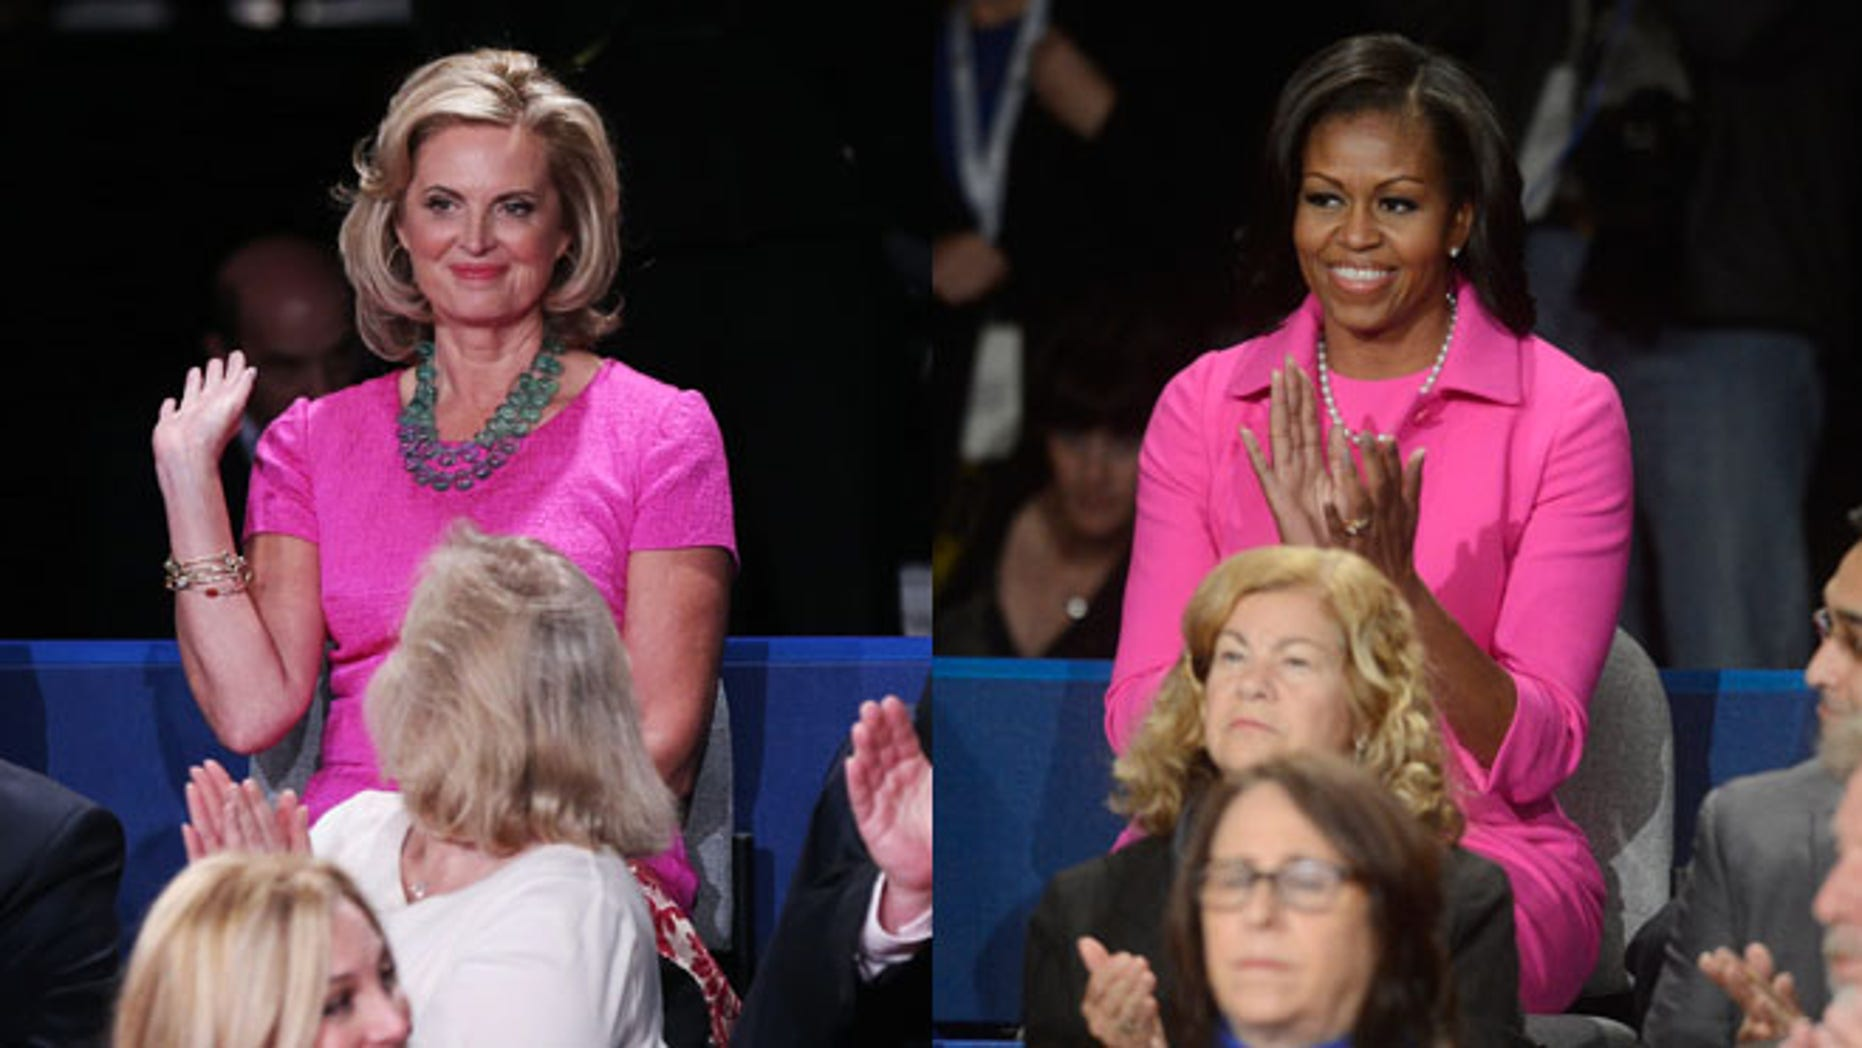 Shown here are Ann Romney and Michelle Obama during the second presidential debate Oct. 16, 2012, in Hempstead, N.Y.